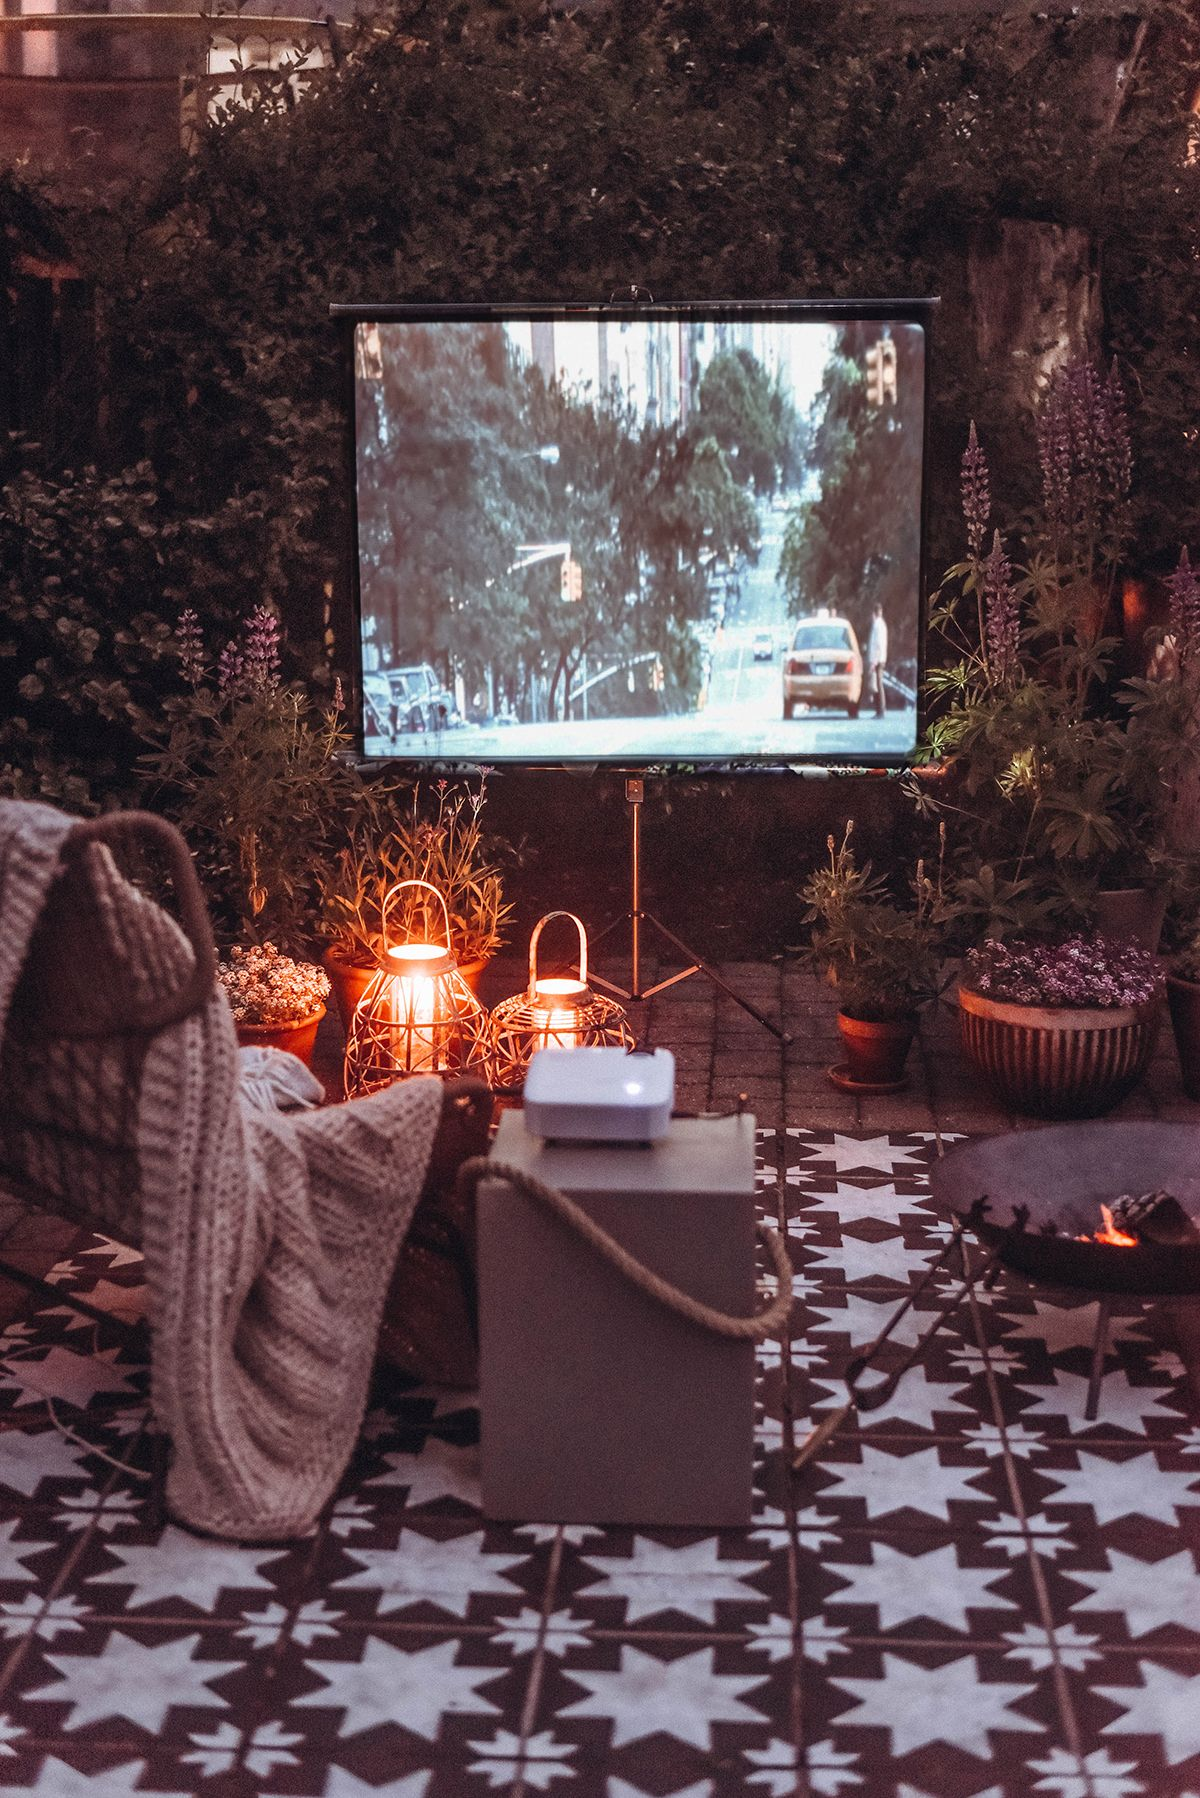 Vintage screen and projector shape this fab outdoor cinema